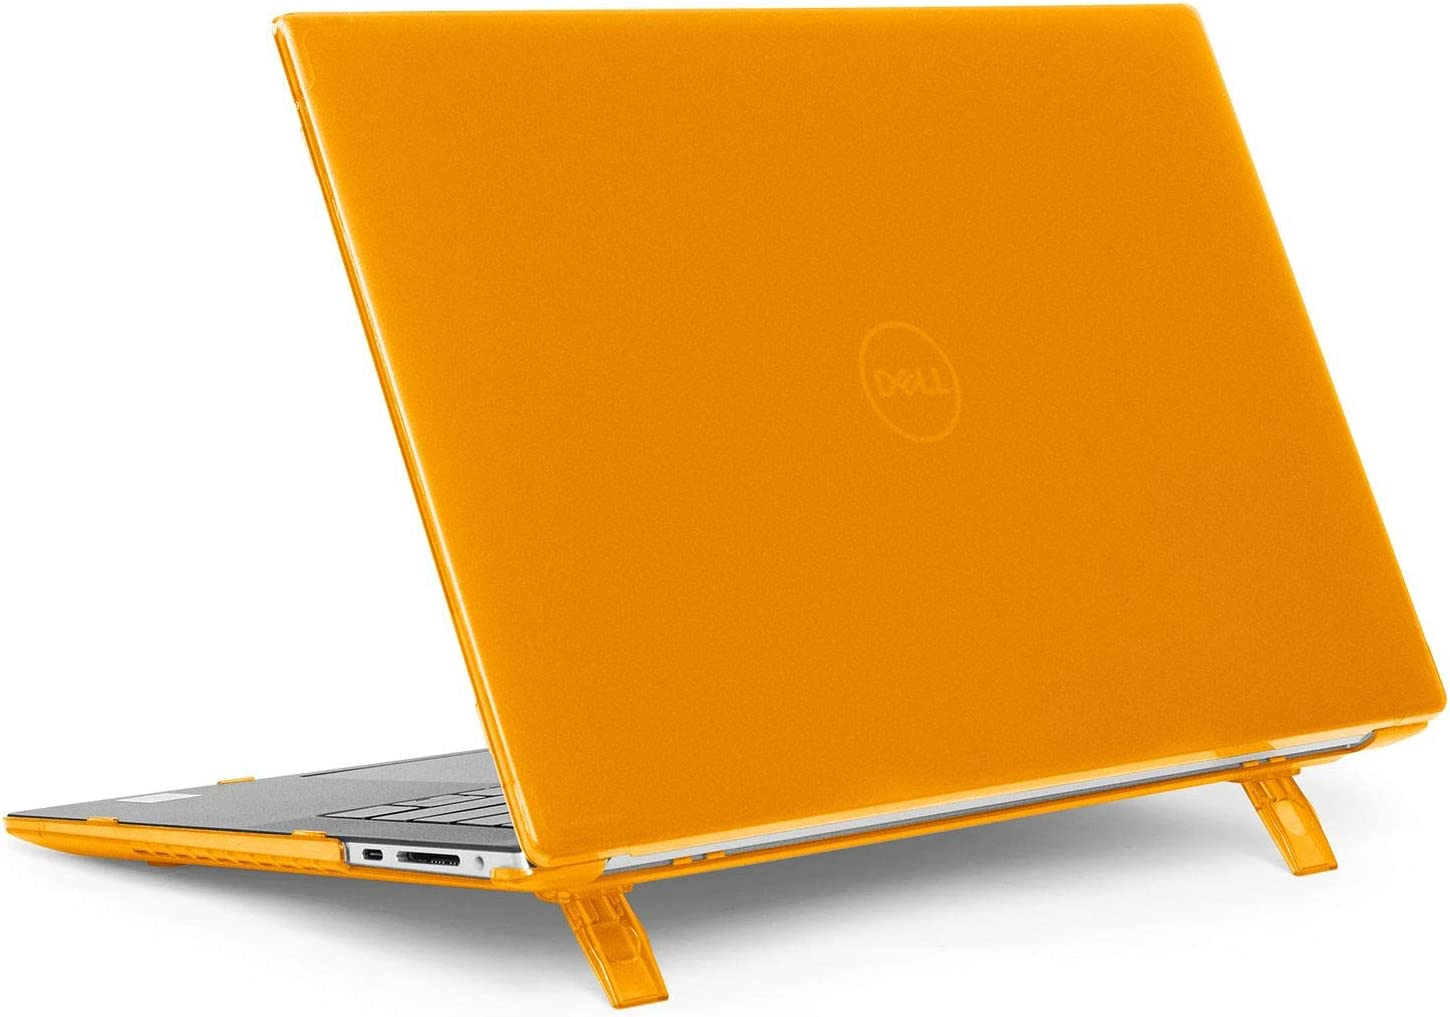 """mCover Hard Shell CASE for New 2020 15.6"""" Dell XPS 15 9500 / Precision 5550 Series Laptop Computer (Orange)"""